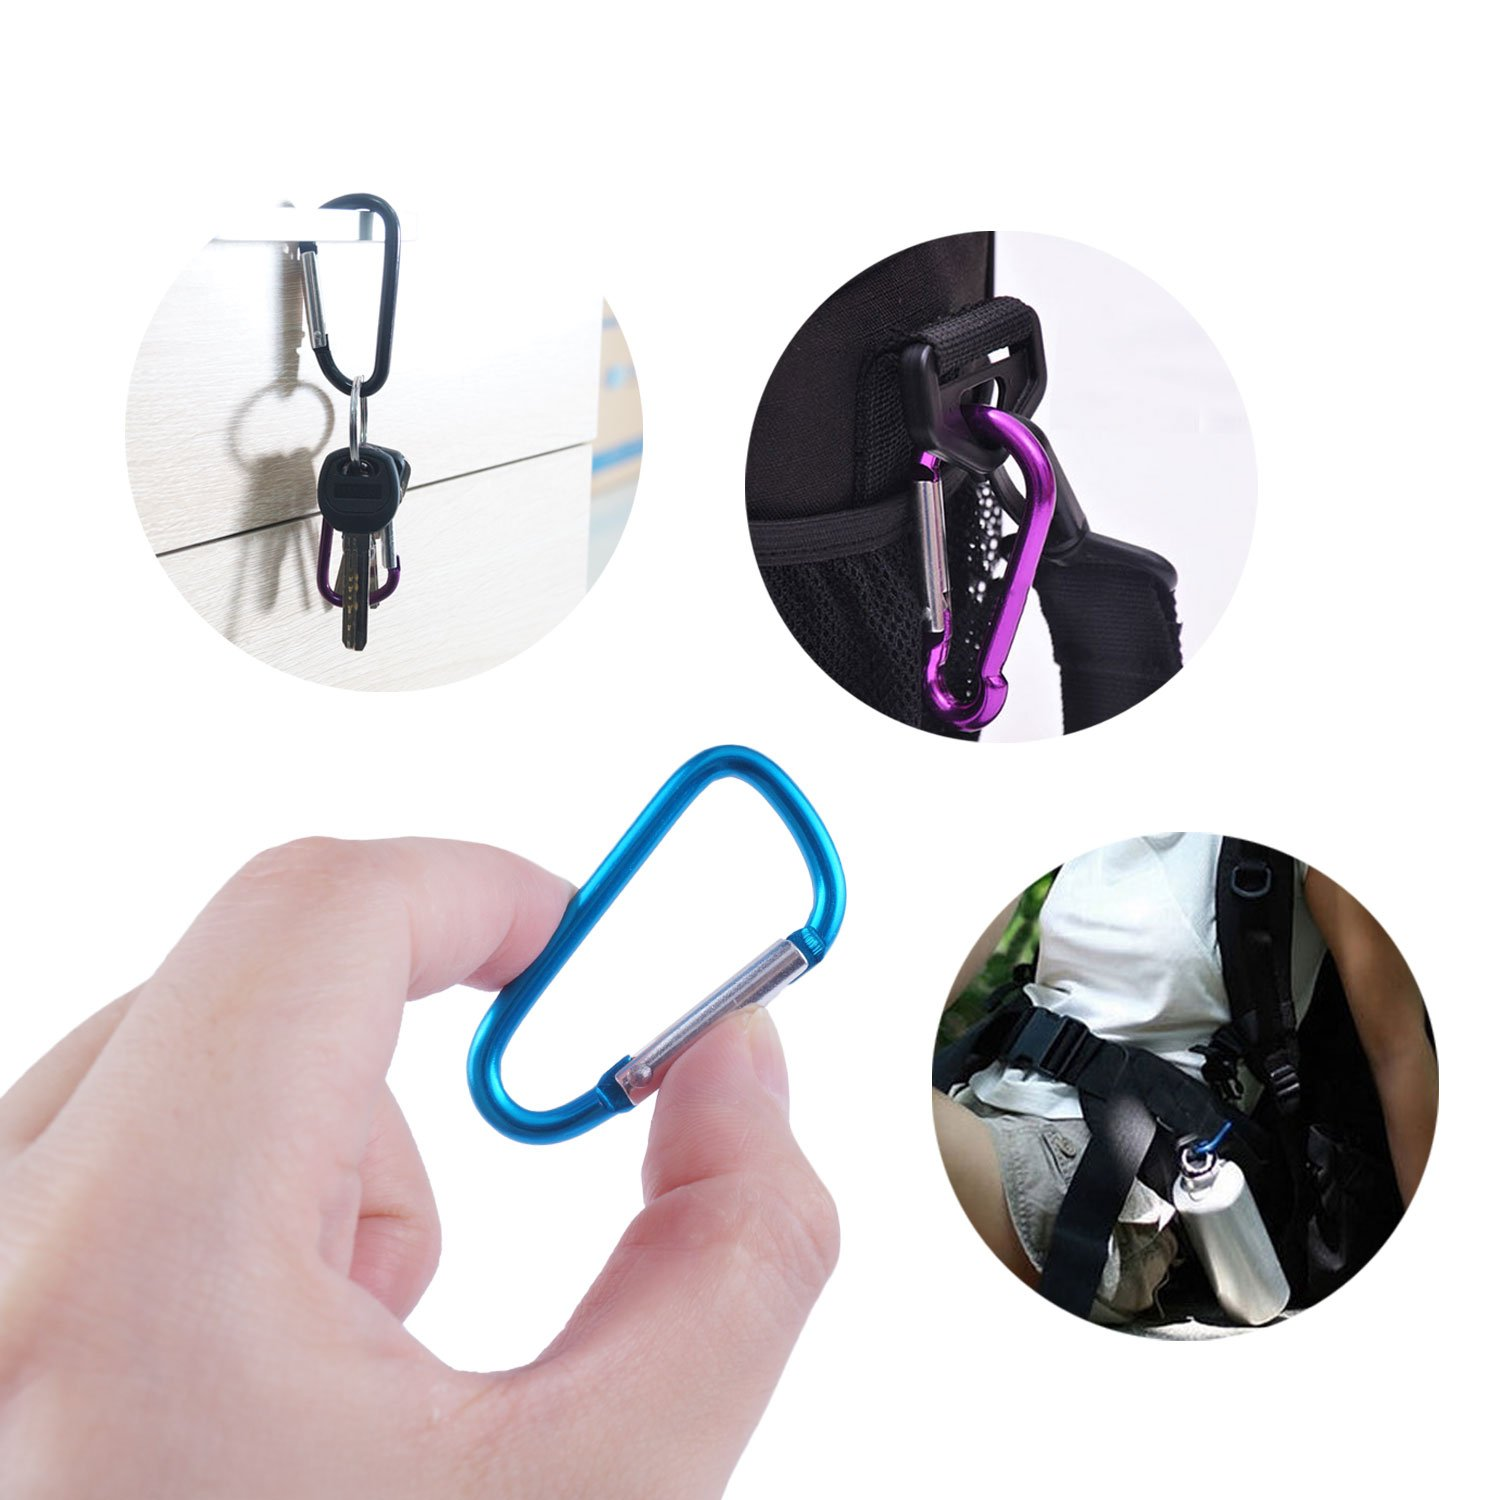 Carabiner Clip Aluminum D-Ring Spring Loaded Gate Small Keychain Carabiner Clip Set for Outdoor Camping 4 Different Sizes Assorted Colors/Pack of 20 GKCI